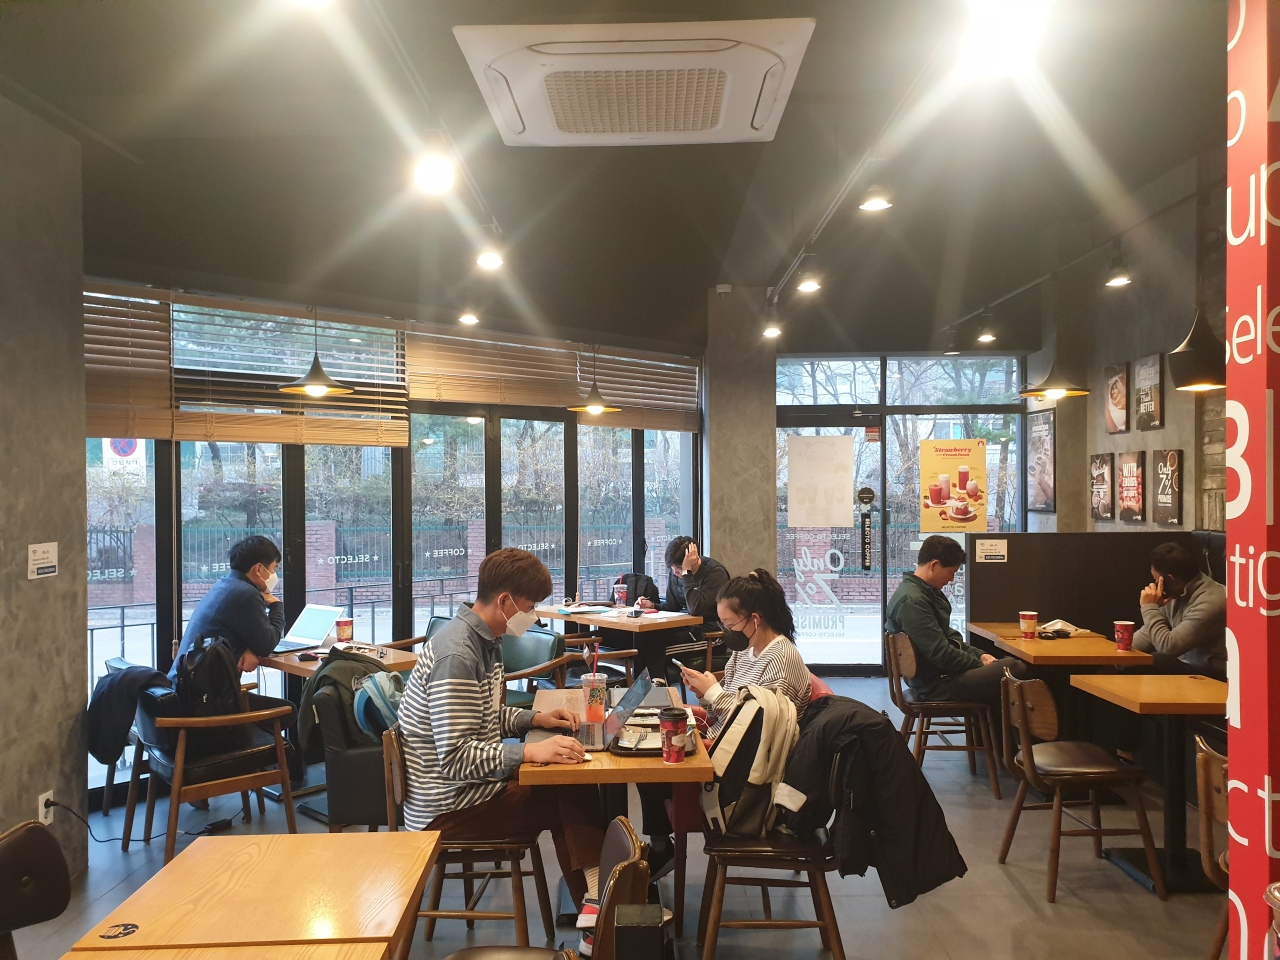 Though the COVID-19 outbreak continues, a coffee shop in Seongnam, Gyeonggi Province, has a steady turnout of customers. (Park Yuna/The Korea Herald)